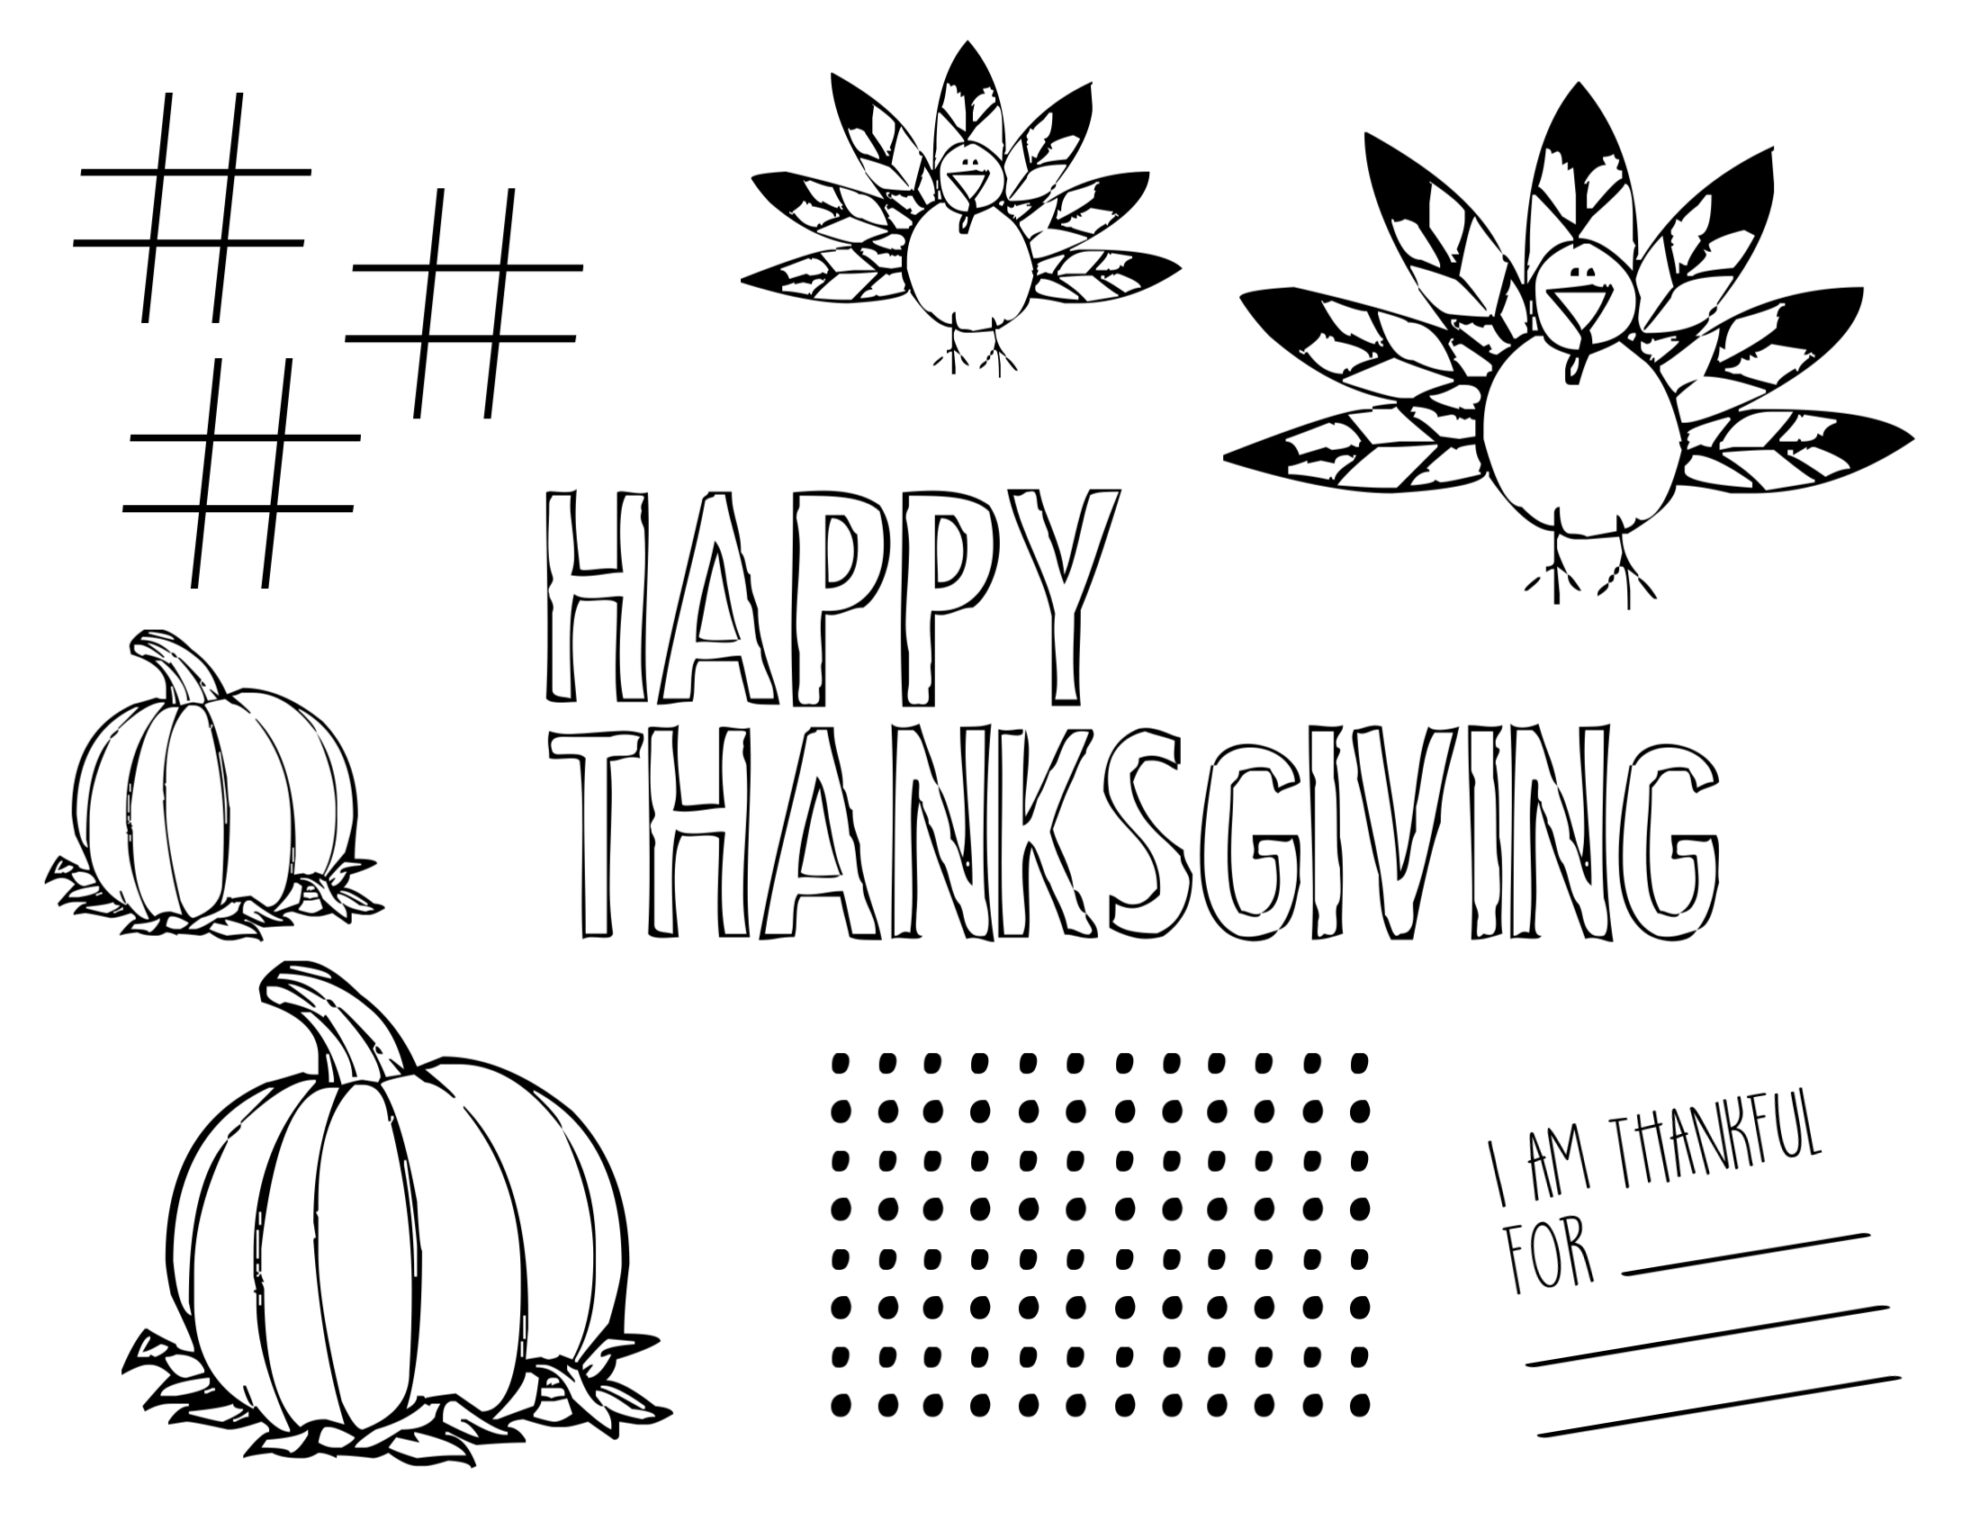 picture relating to Free Printable Thanksgiving Placemats called Absolutely free Printable Thanksgiving Placemat - Paper Path Style